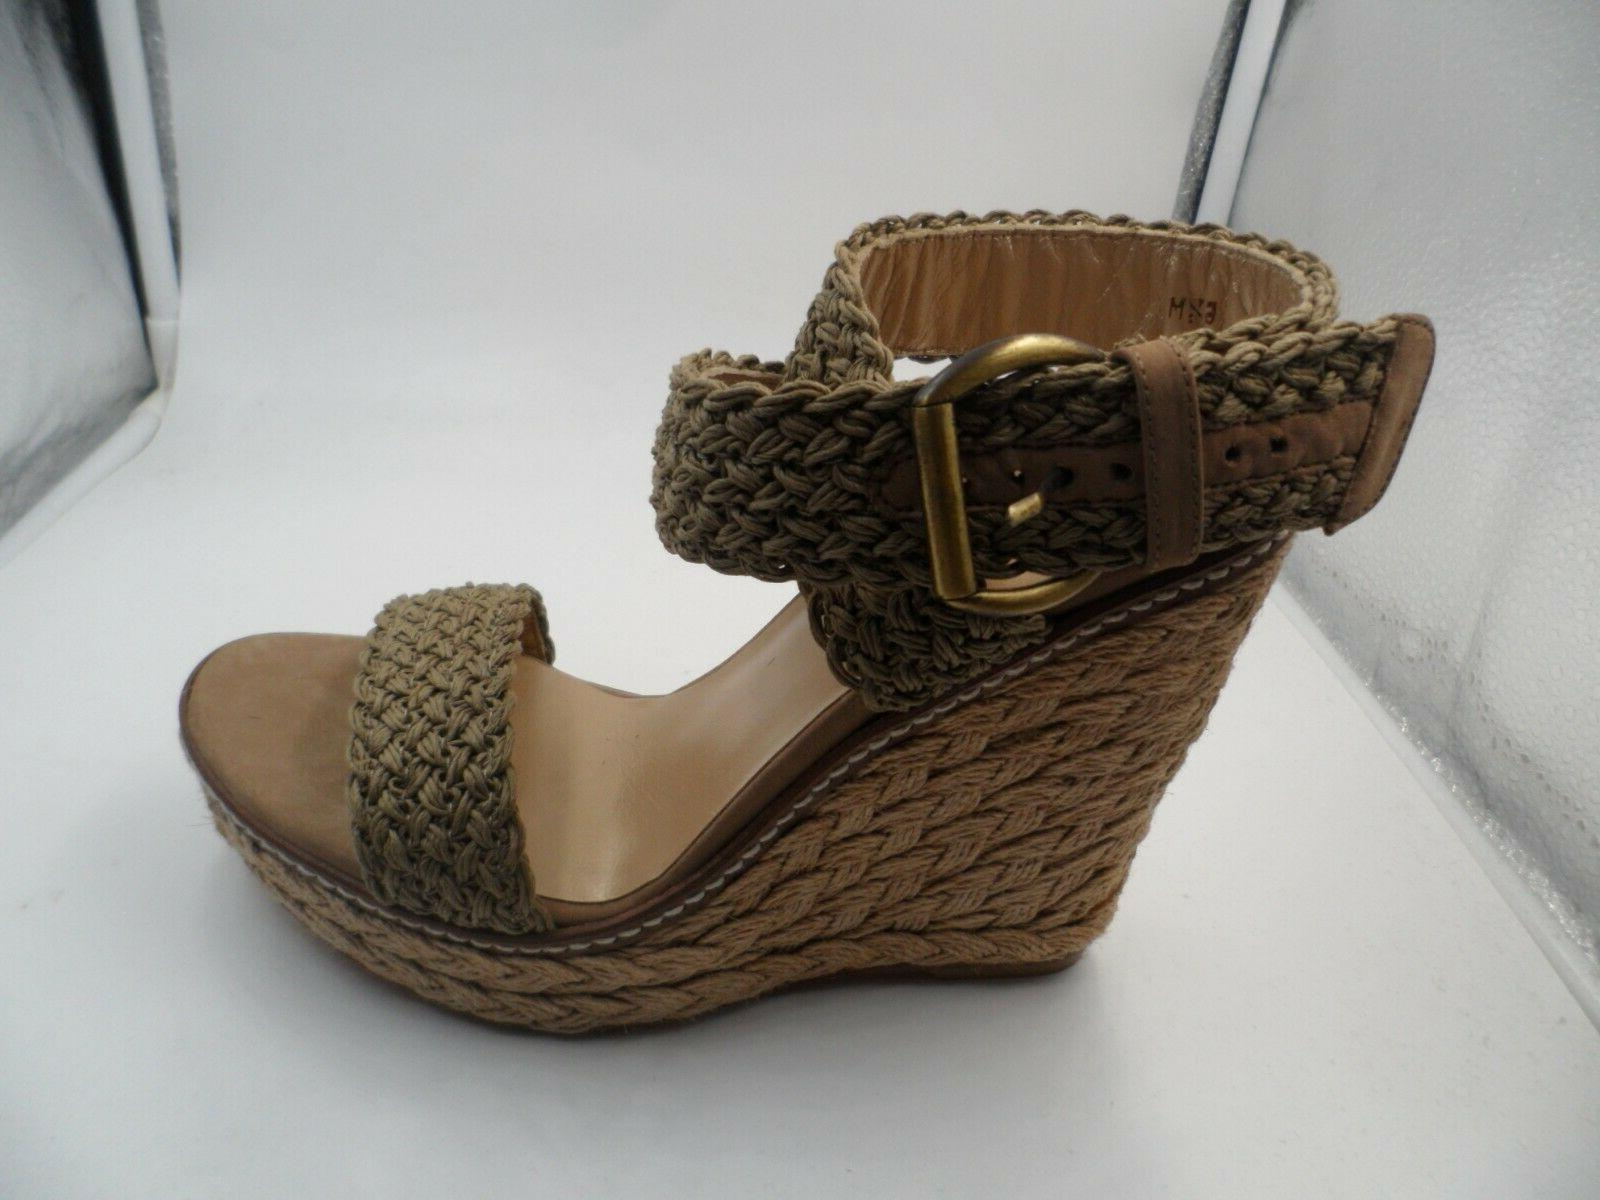 Alex Crochet Wedge Ankle 6.5 M